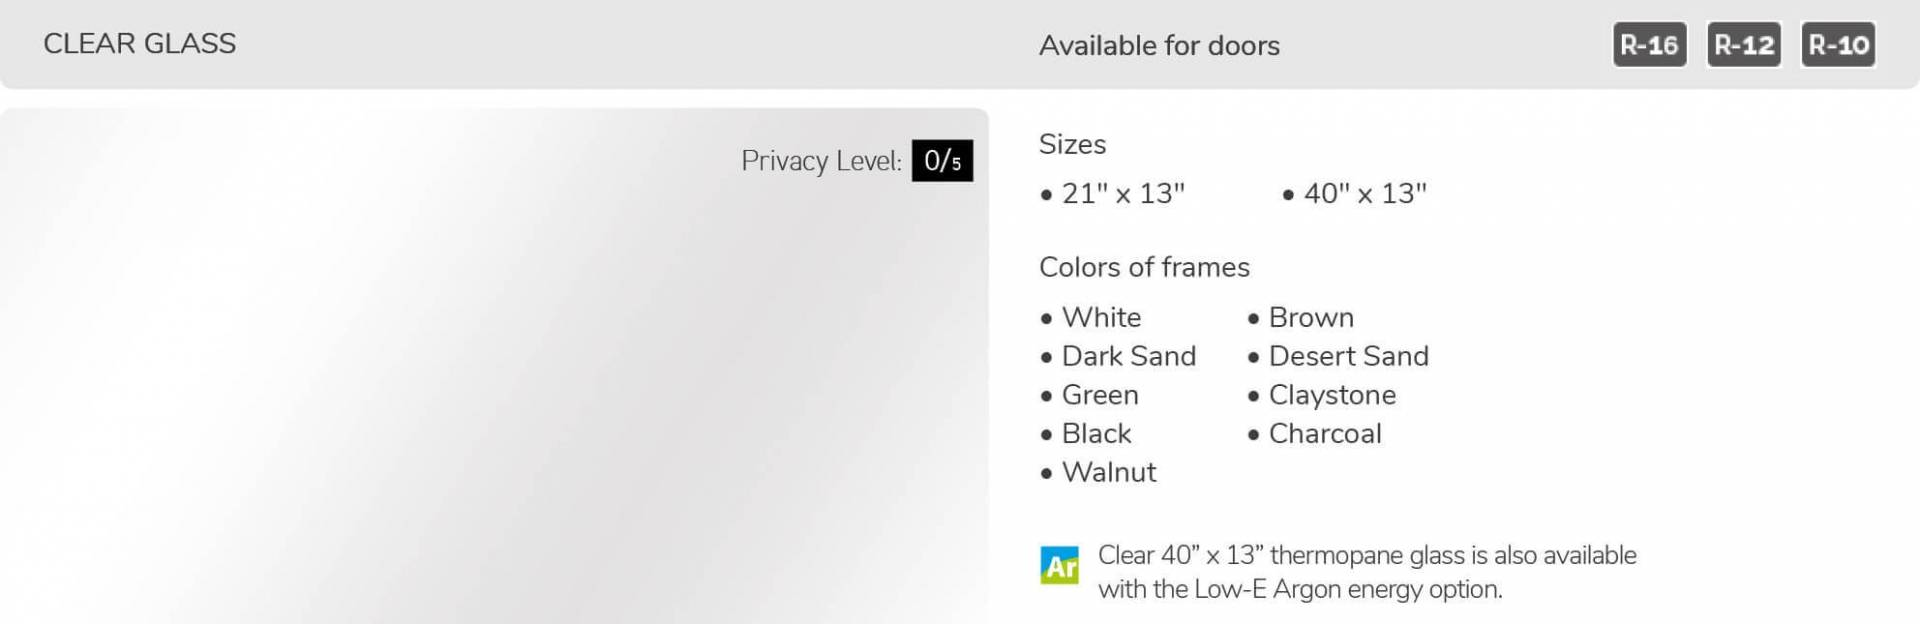 Clear glass, 21' x 13' and 40' x 13', available for doors R-16, R-12 and R-10